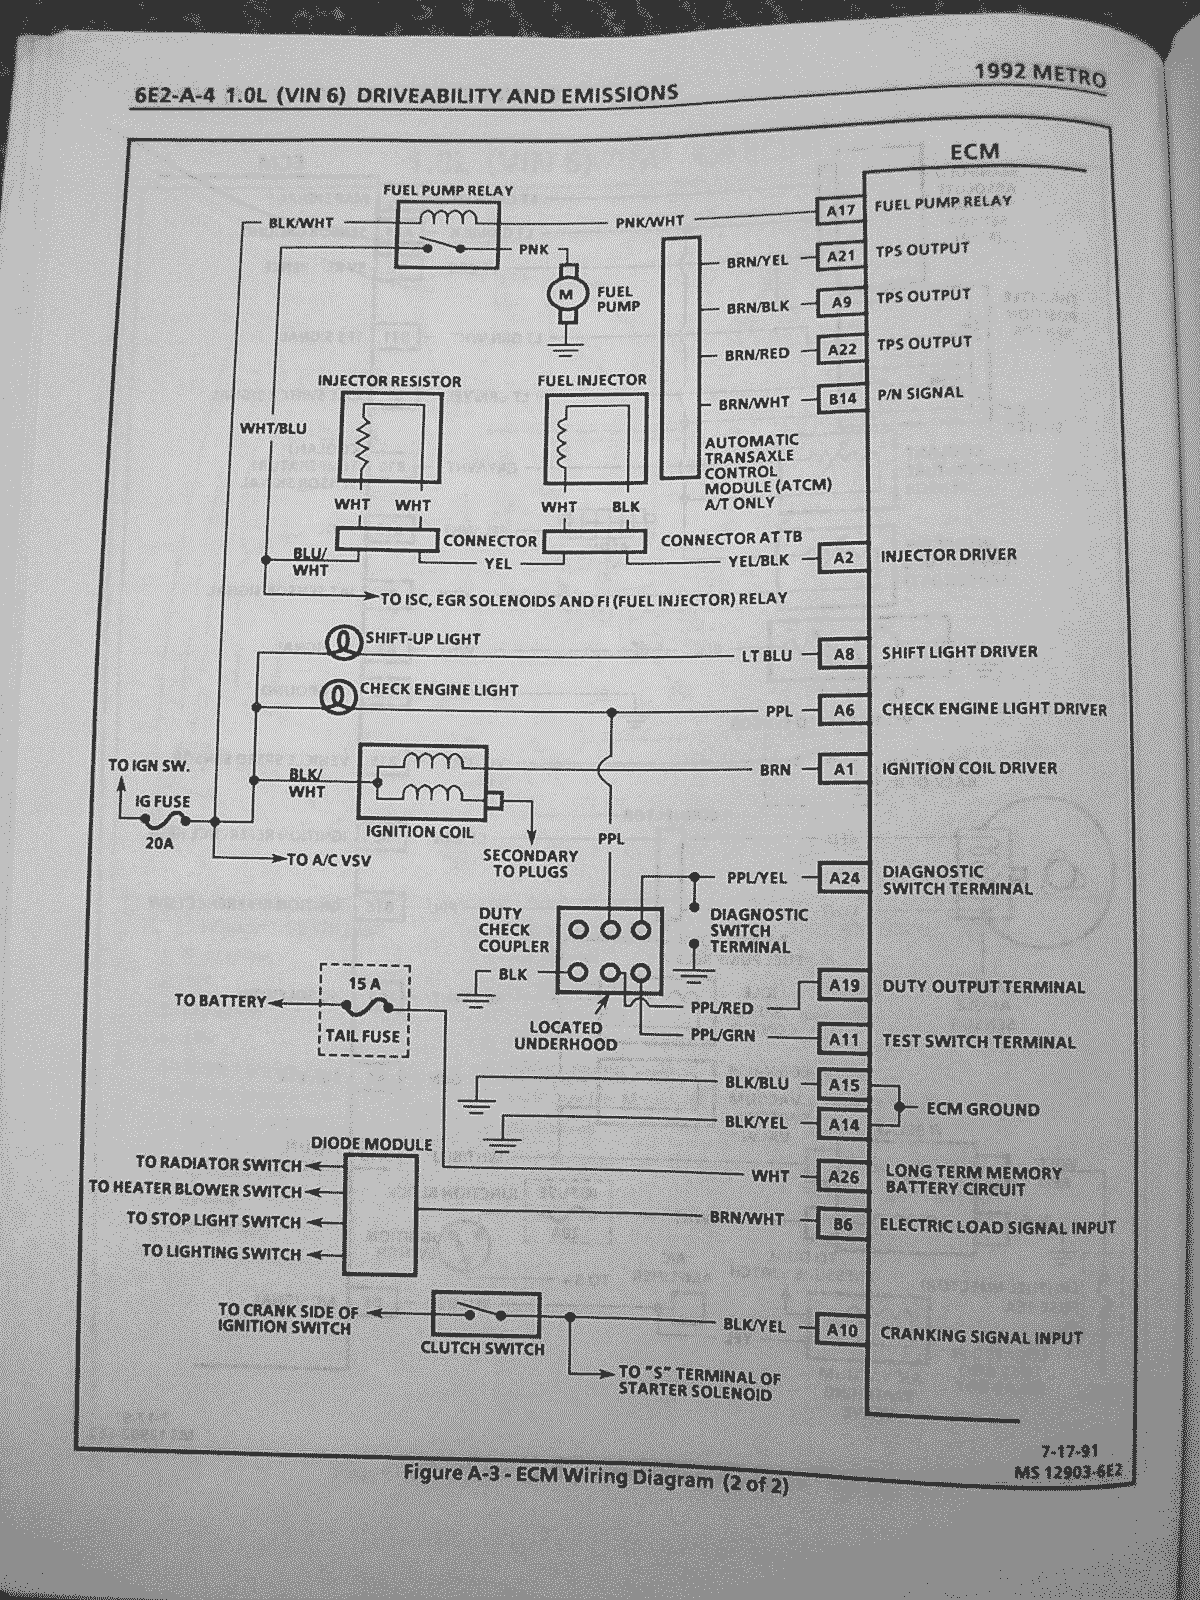 6e2 a 4 geo metro and suzuki swift wiring diagrams metroxfi com 1997 geo metro wire diagram at cita.asia